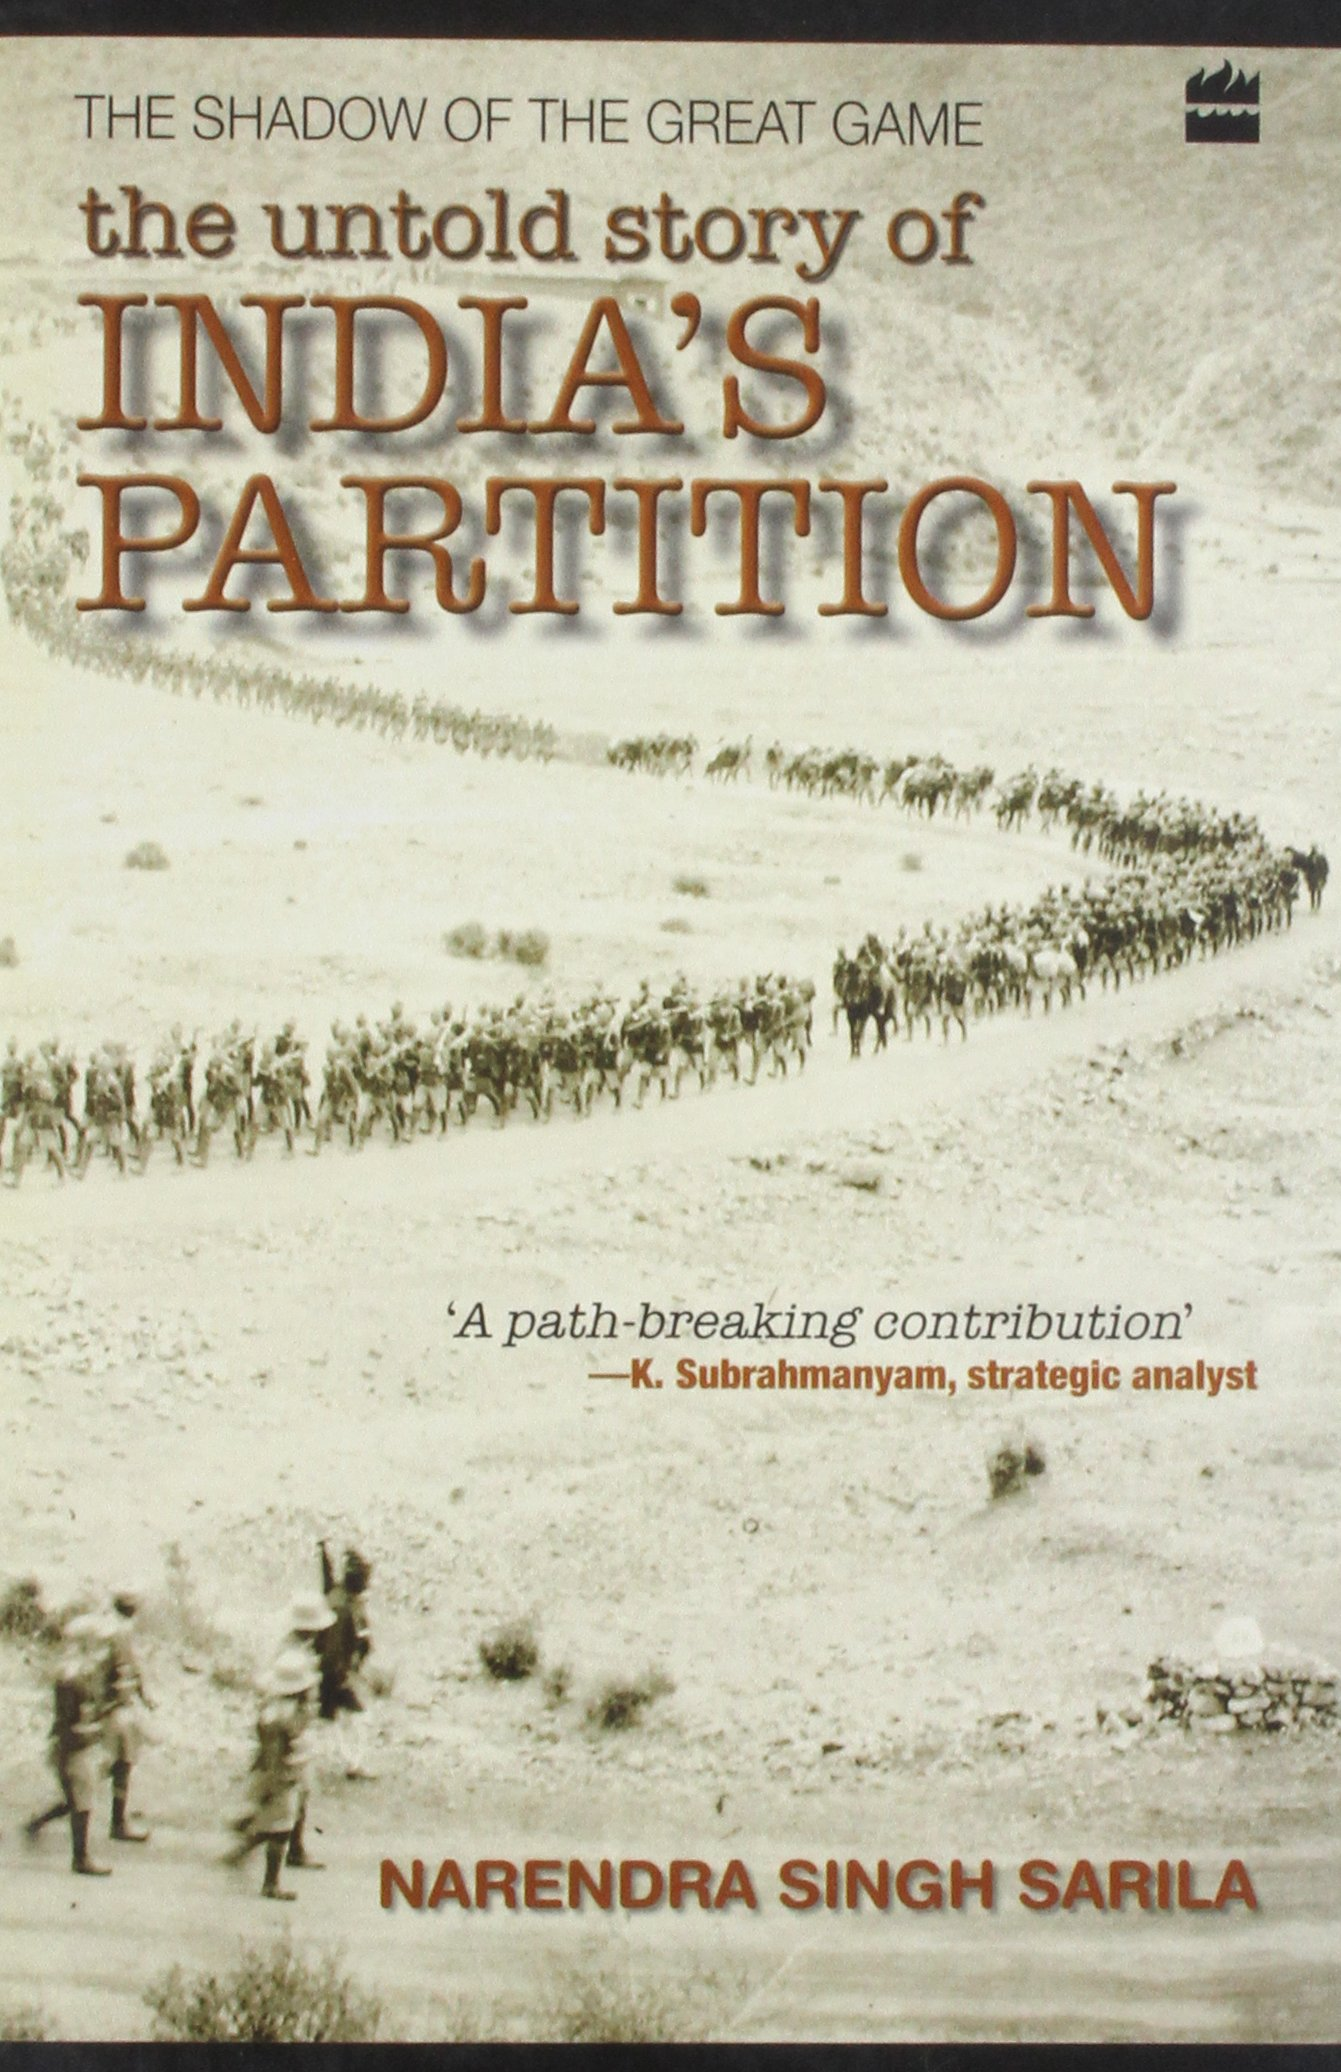 The Shadow Of The Great Game: The Untold Story Of India's Partition:  Amazon: Narendra Singh Sarila: 9788172238742: Books